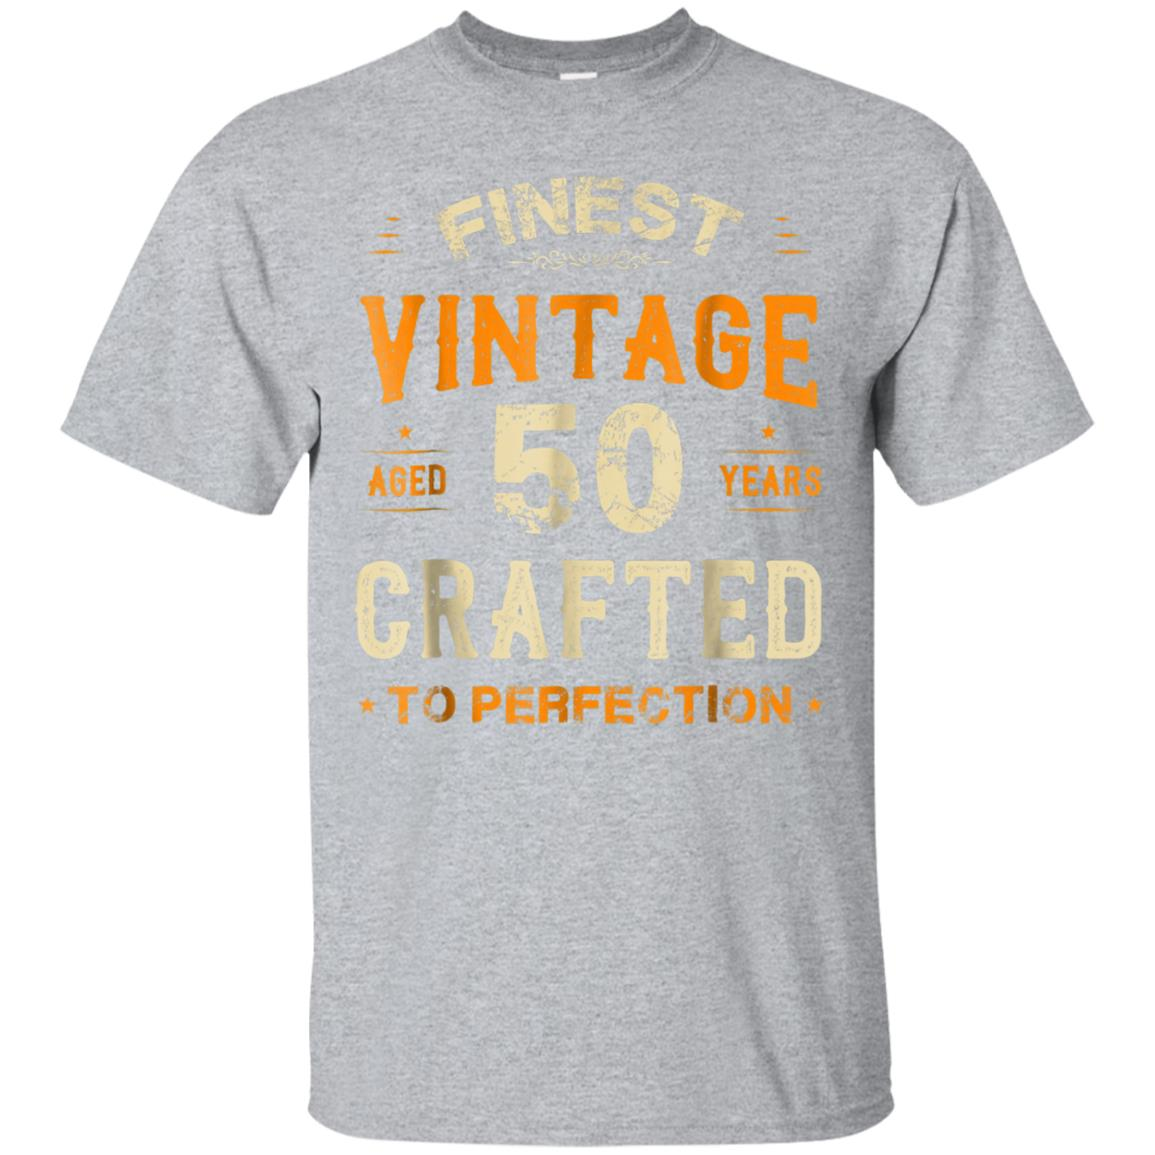 Vintage Craft To Perfection 50 Years Old Shirt 50th Birthday 99promocode